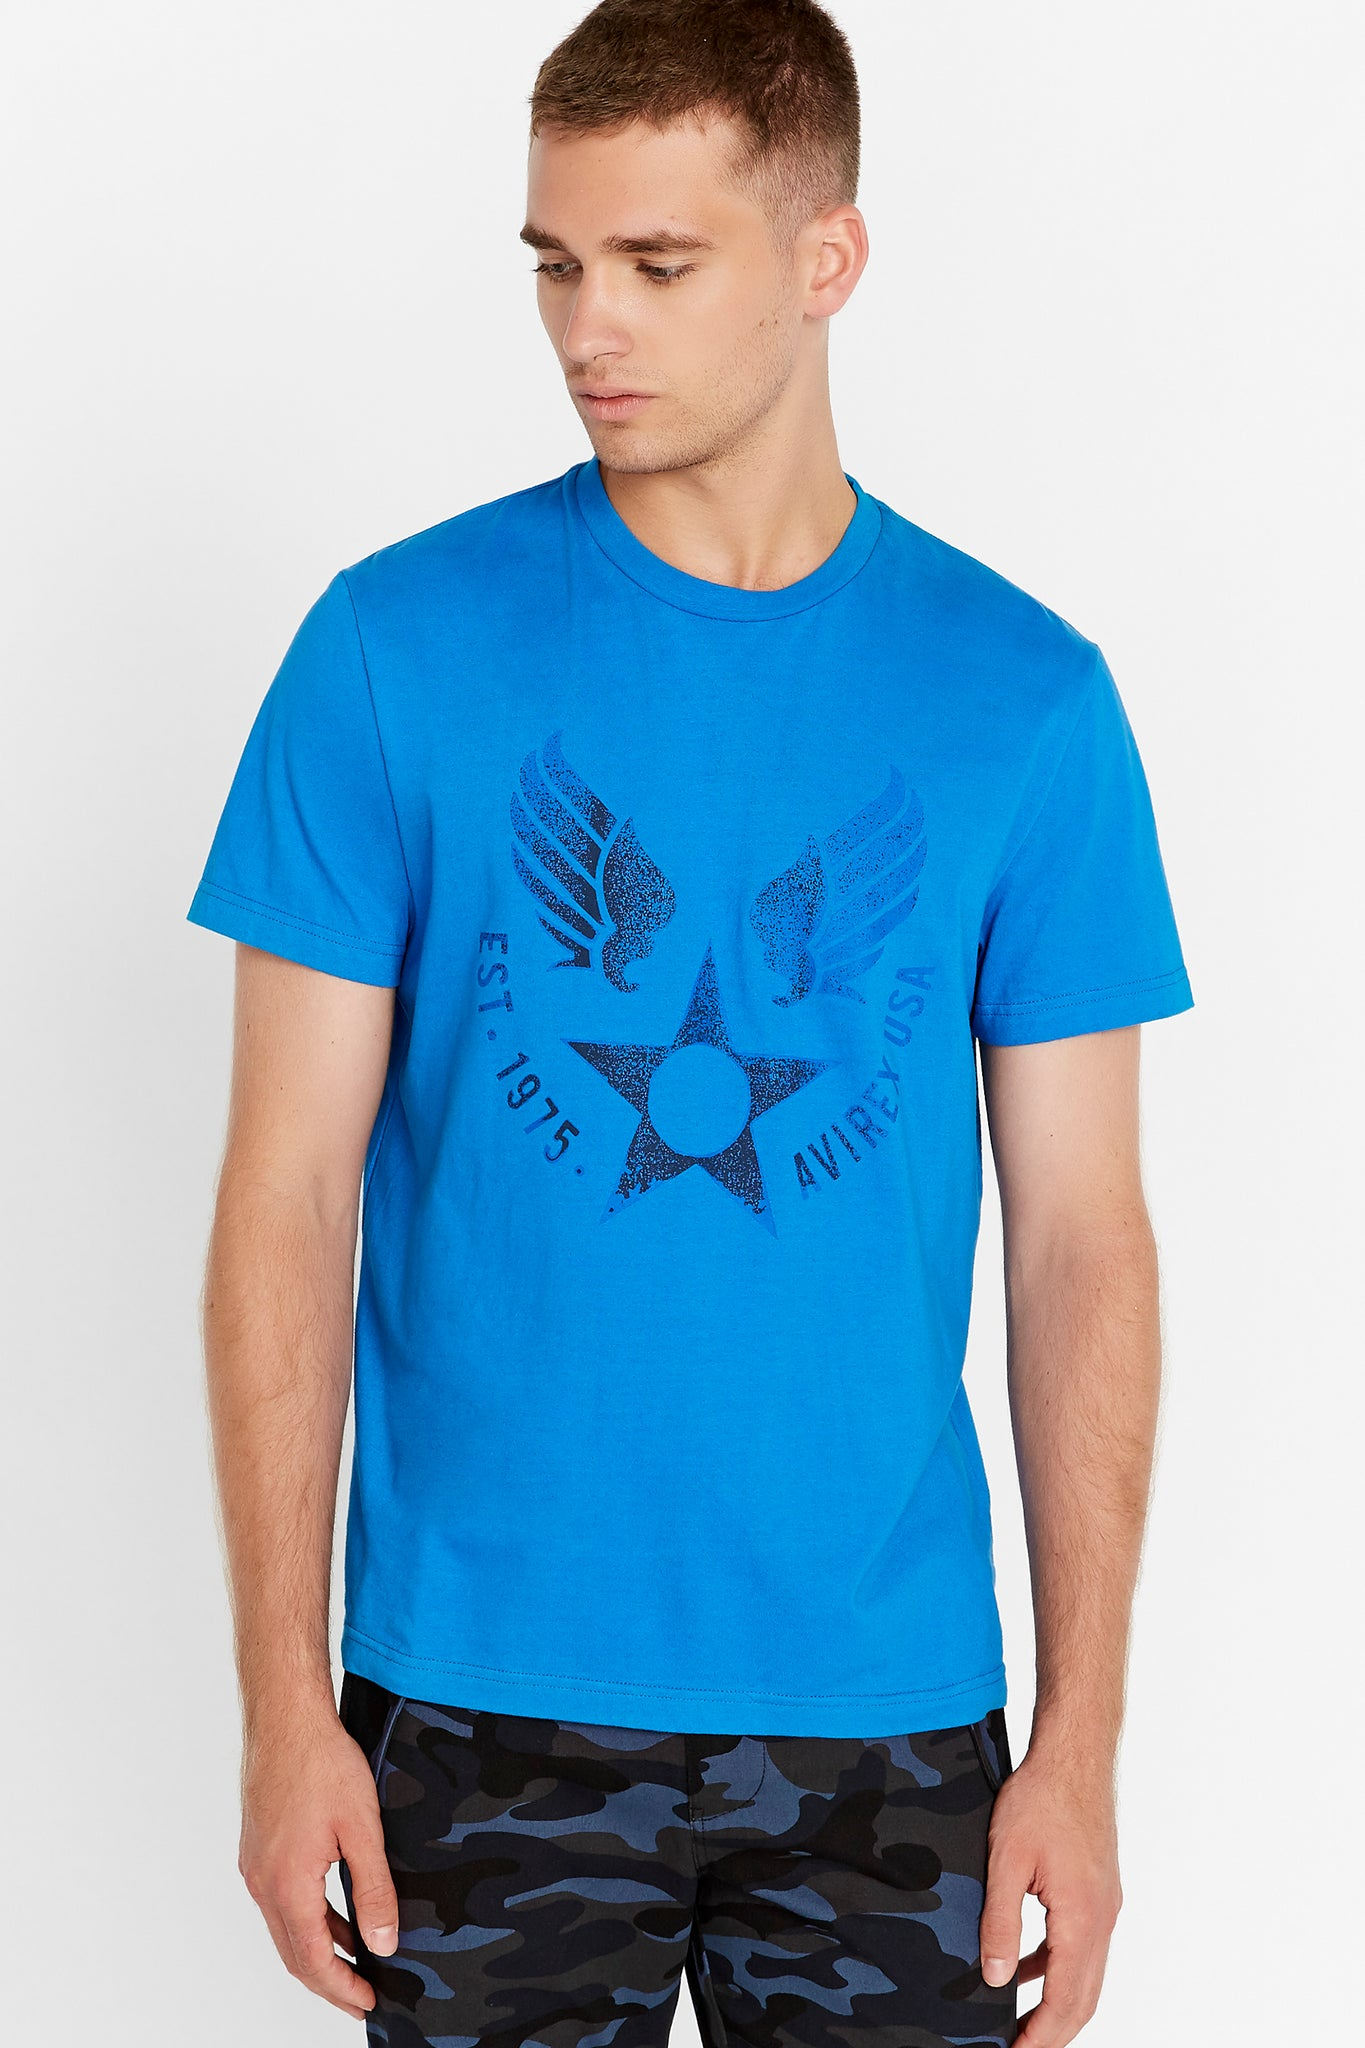 Men wearing a royal blue short sleeve crew T-shirt with front Avirex airforce wing-star print